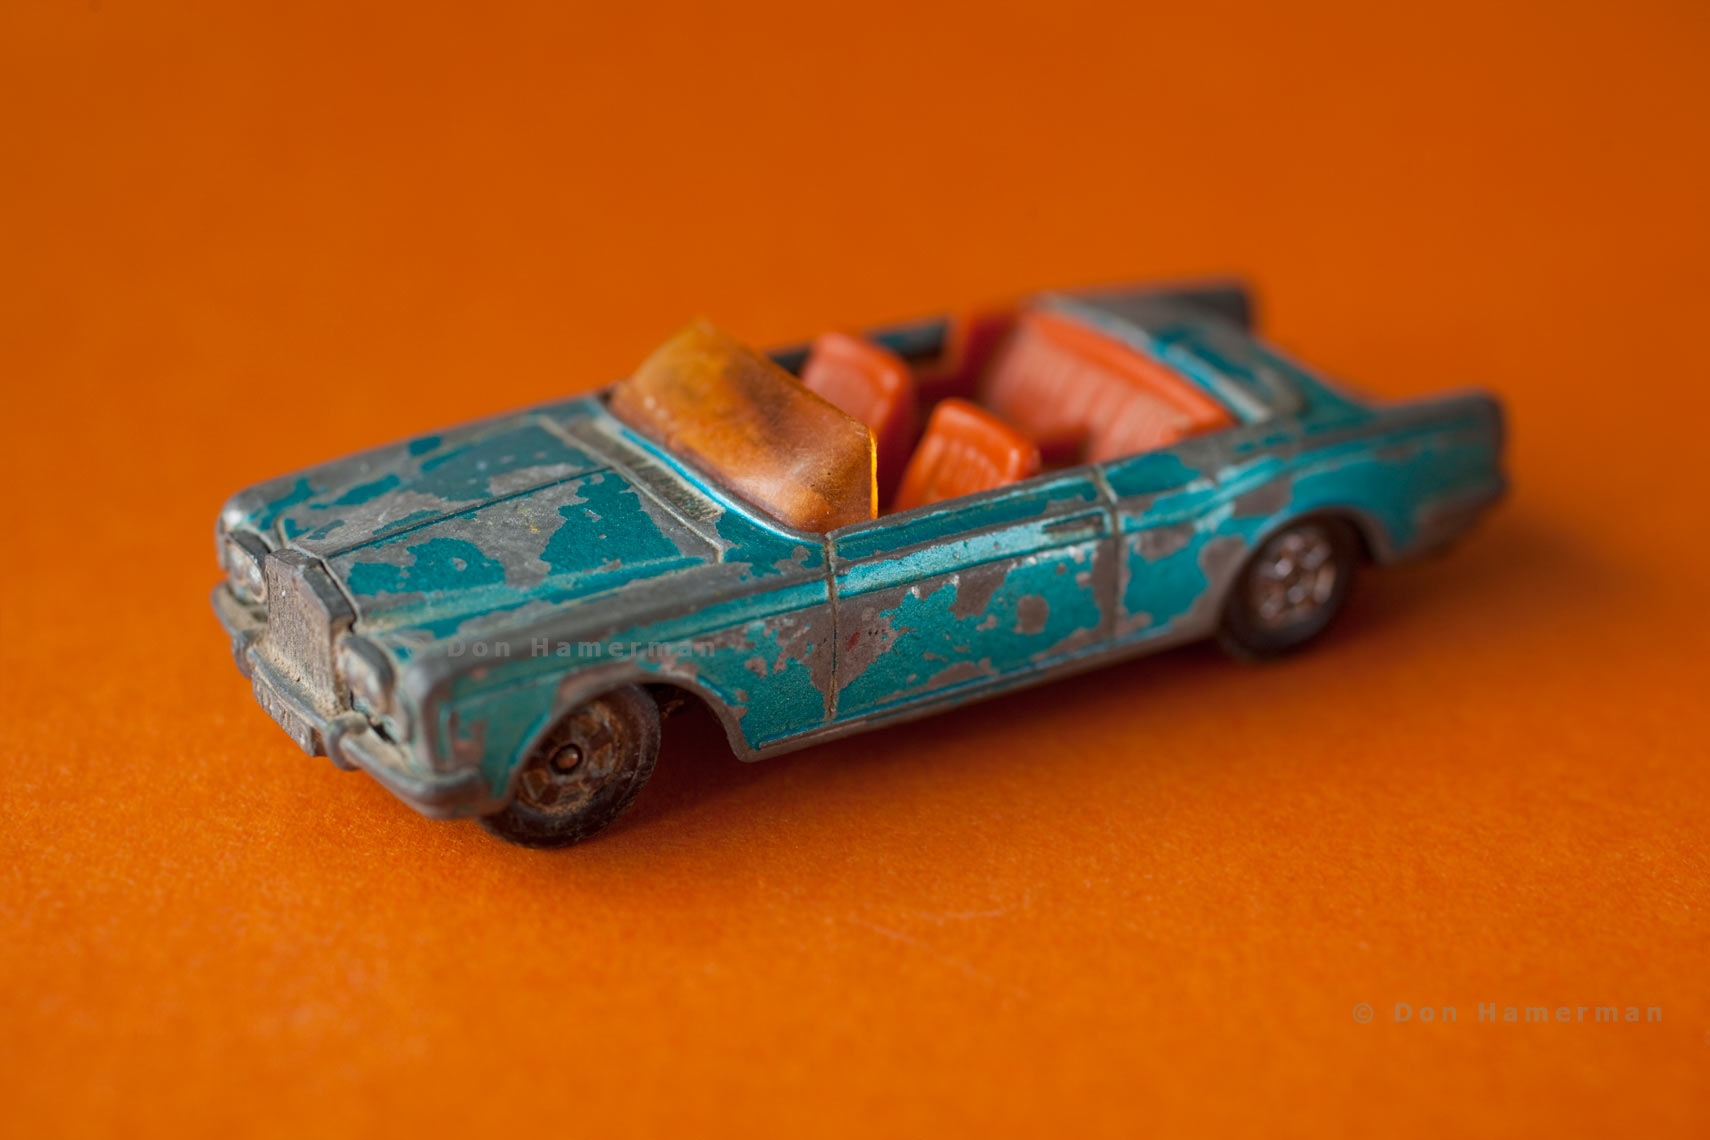 20_hamerman_matchbox.jpg